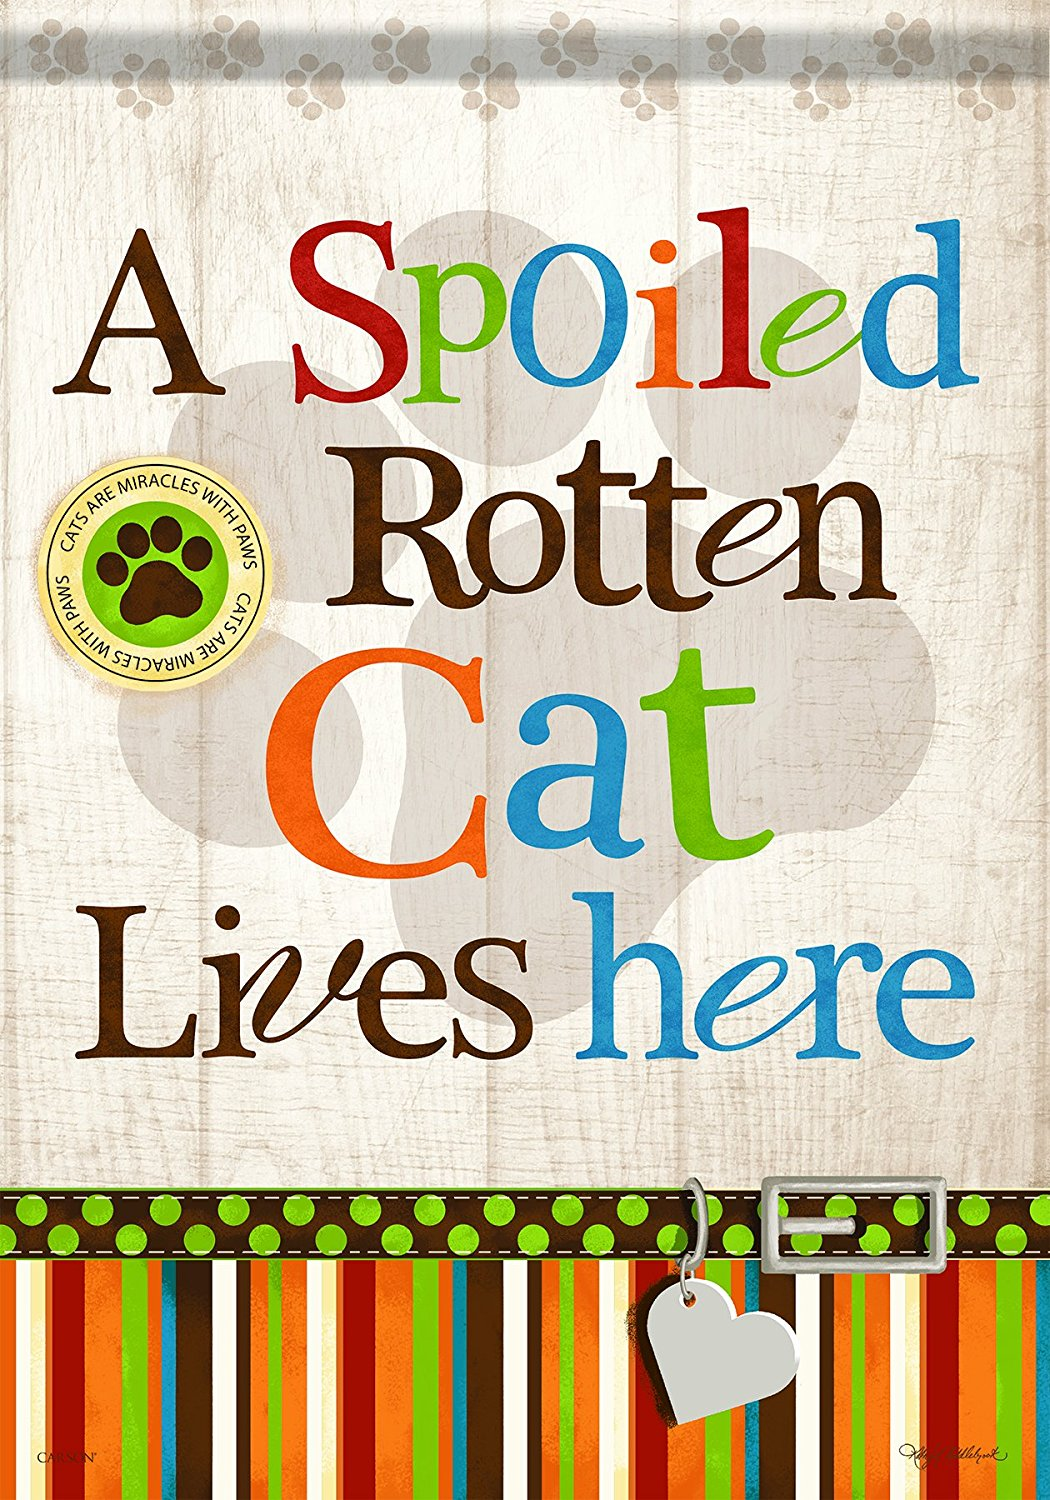 Carson Home Accents A Spoiled Rotten Cat Lives Here Garden Flag